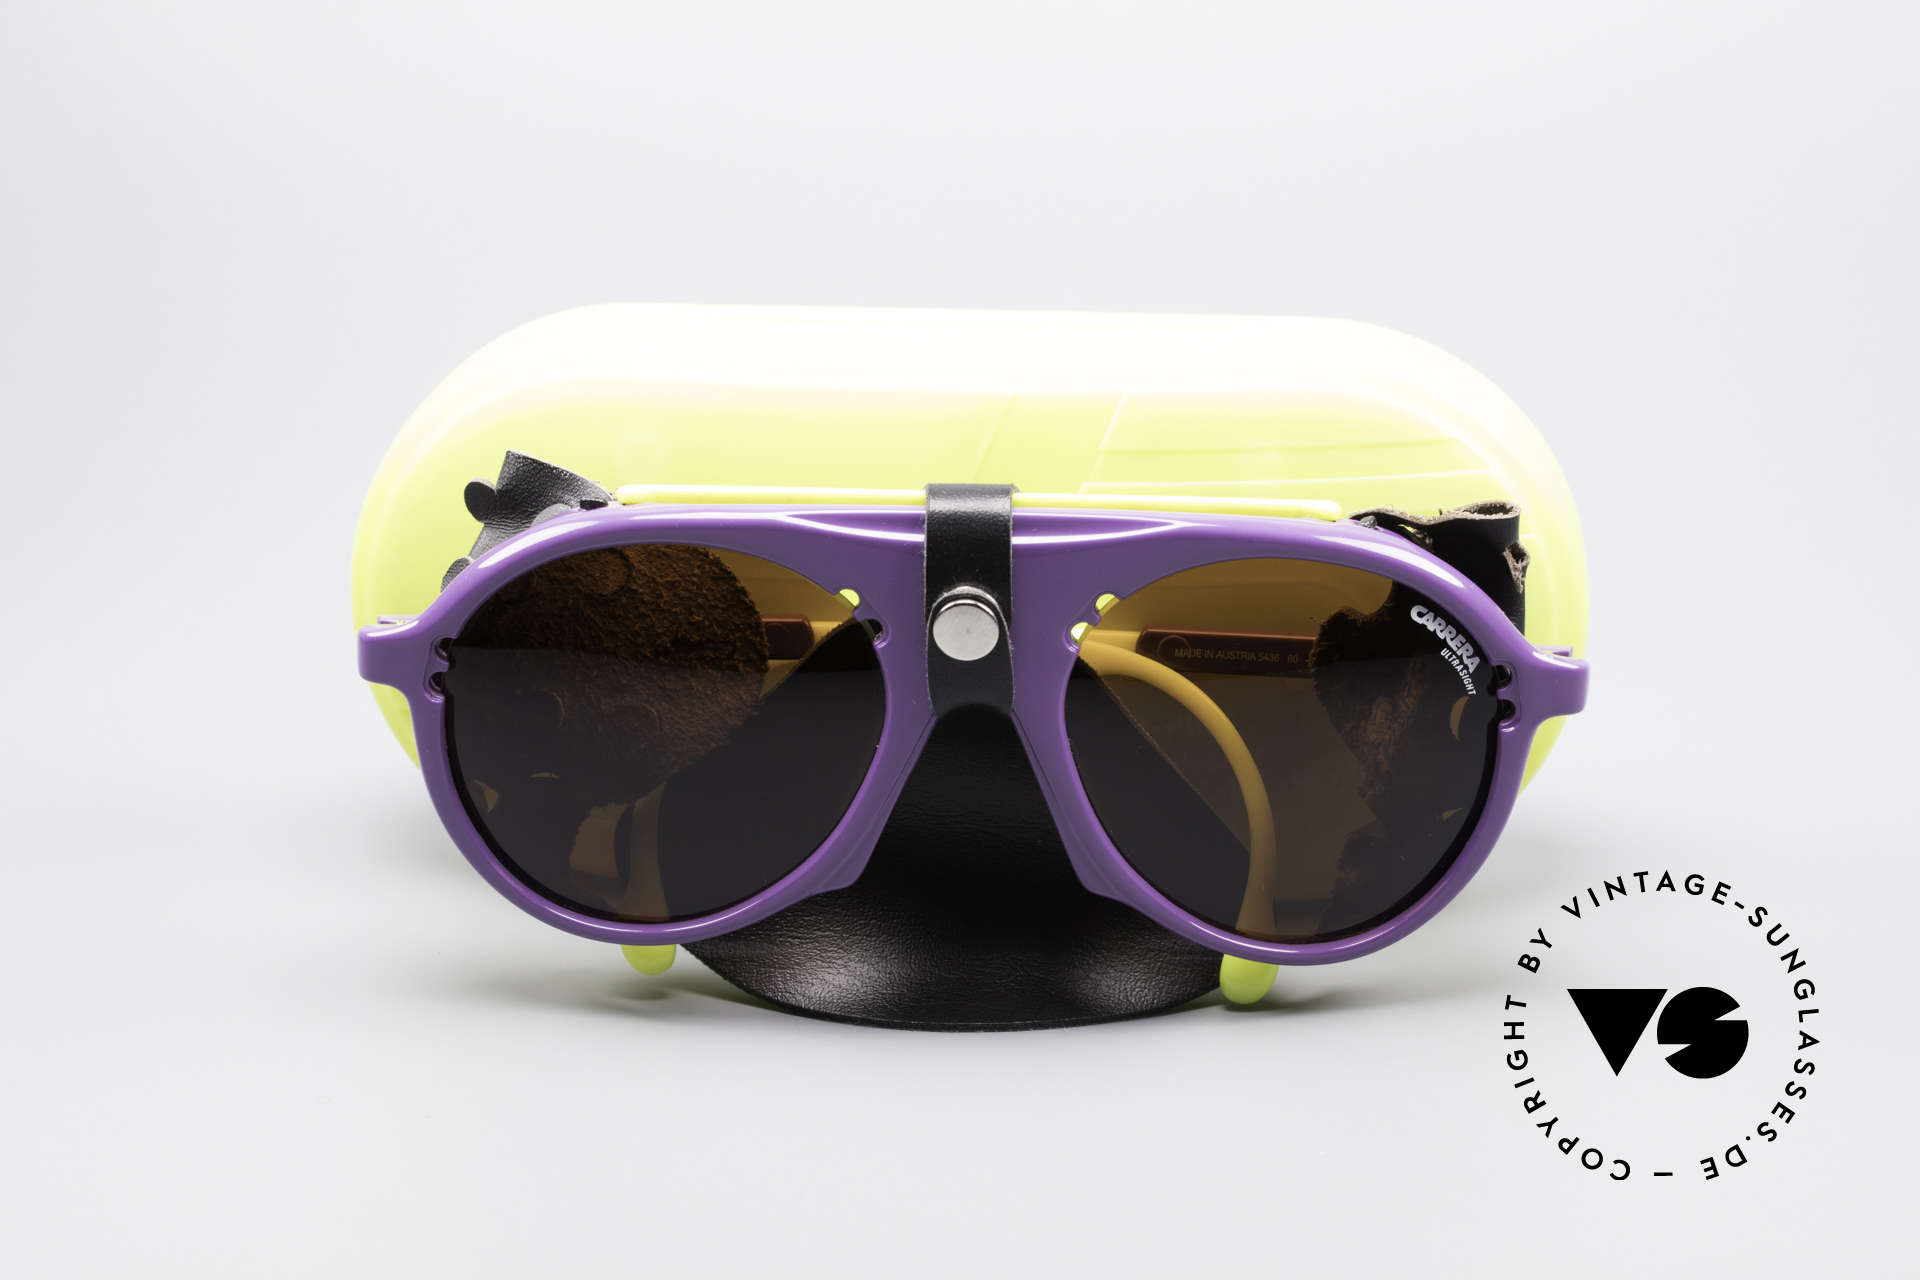 Carrera 5436 Water & Ice Glacier Glasses, NO retro shades; a rare old 80's original (incl. case), Made for Men and Women